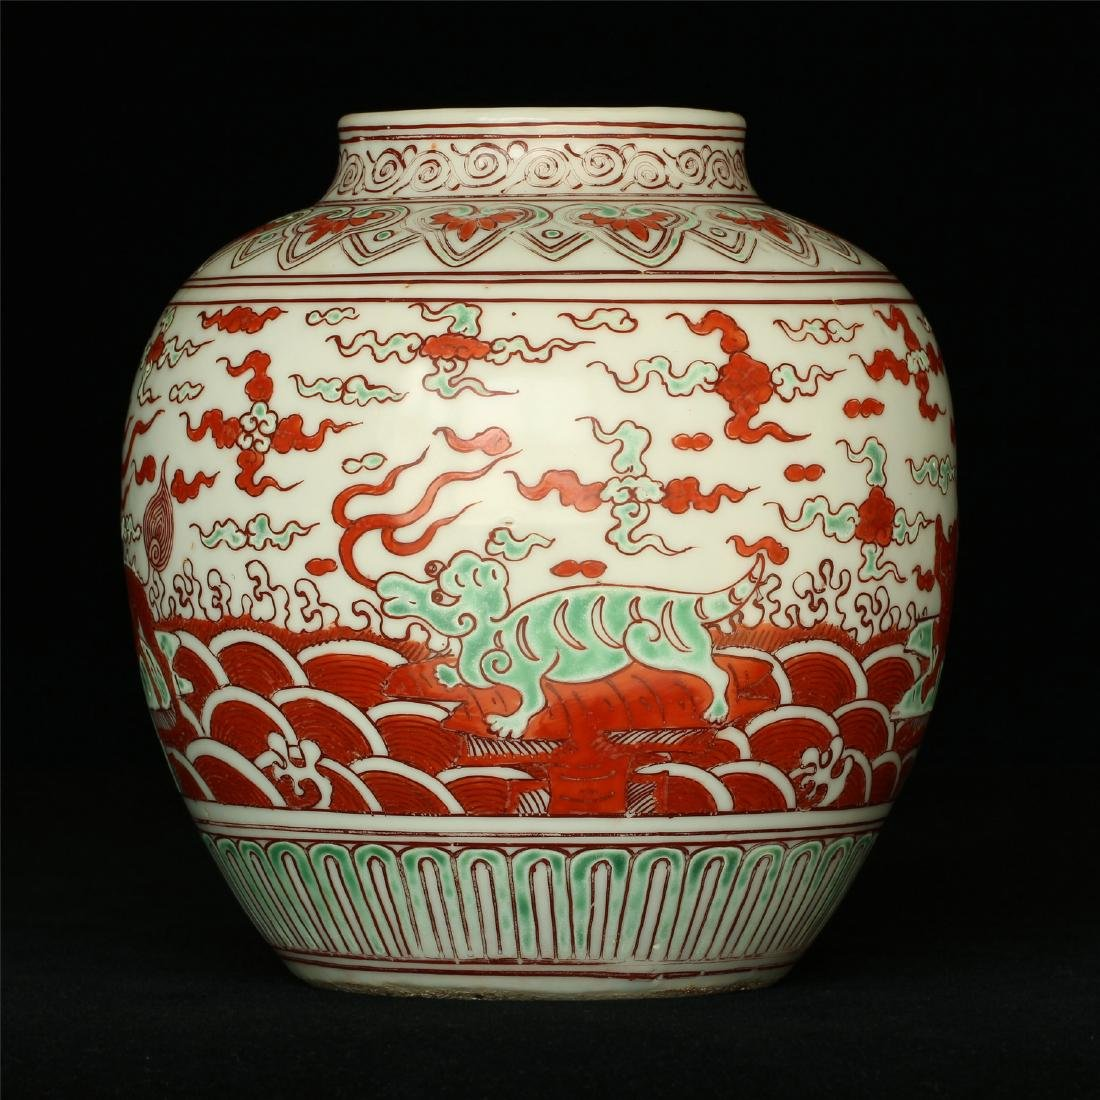 Color porcelain jar of Ming Dynasty WanLi mark.